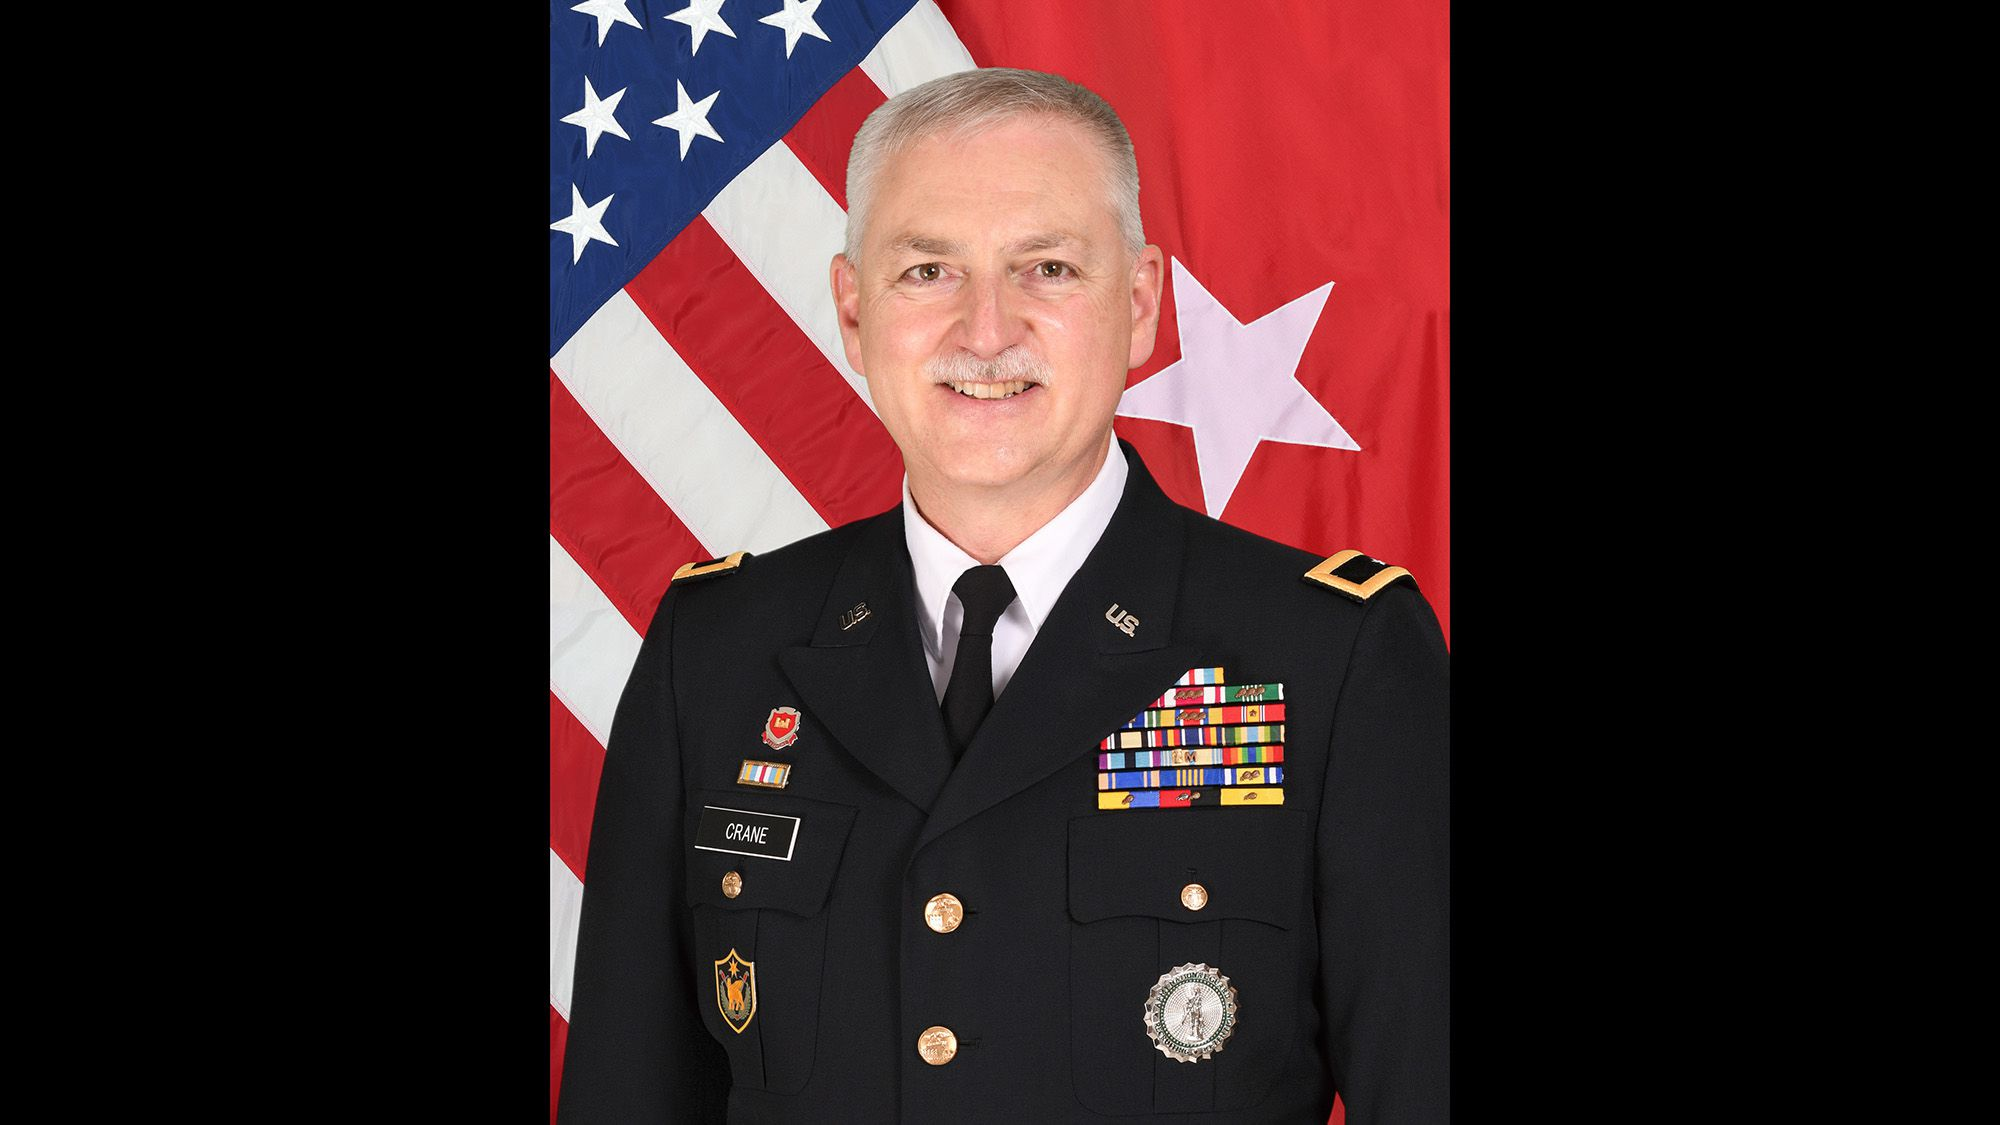 New adjutant general appointed for West Virginia National Guard